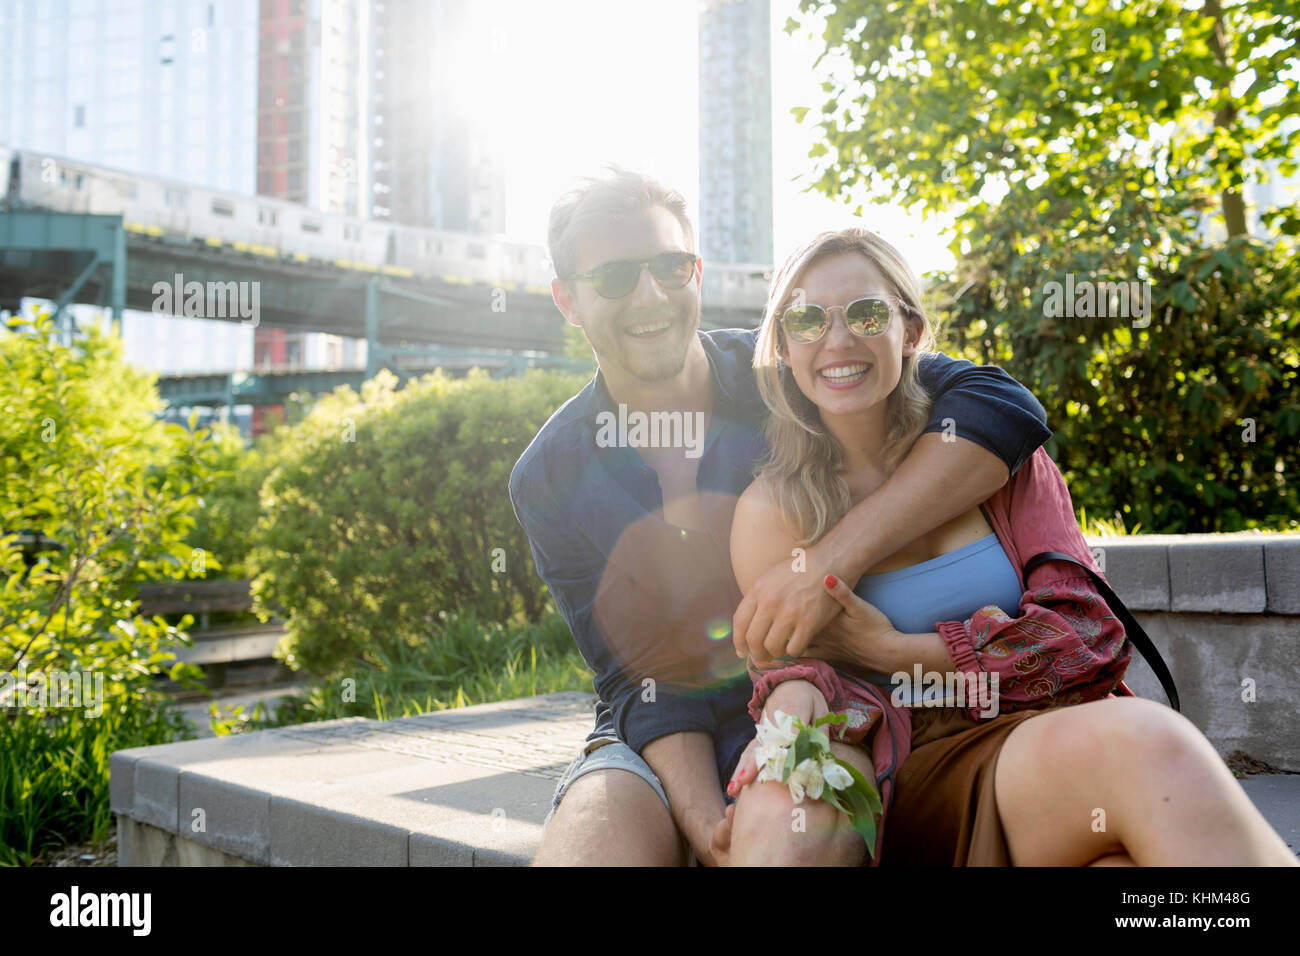 Couple sitting together in a park - Stock Image